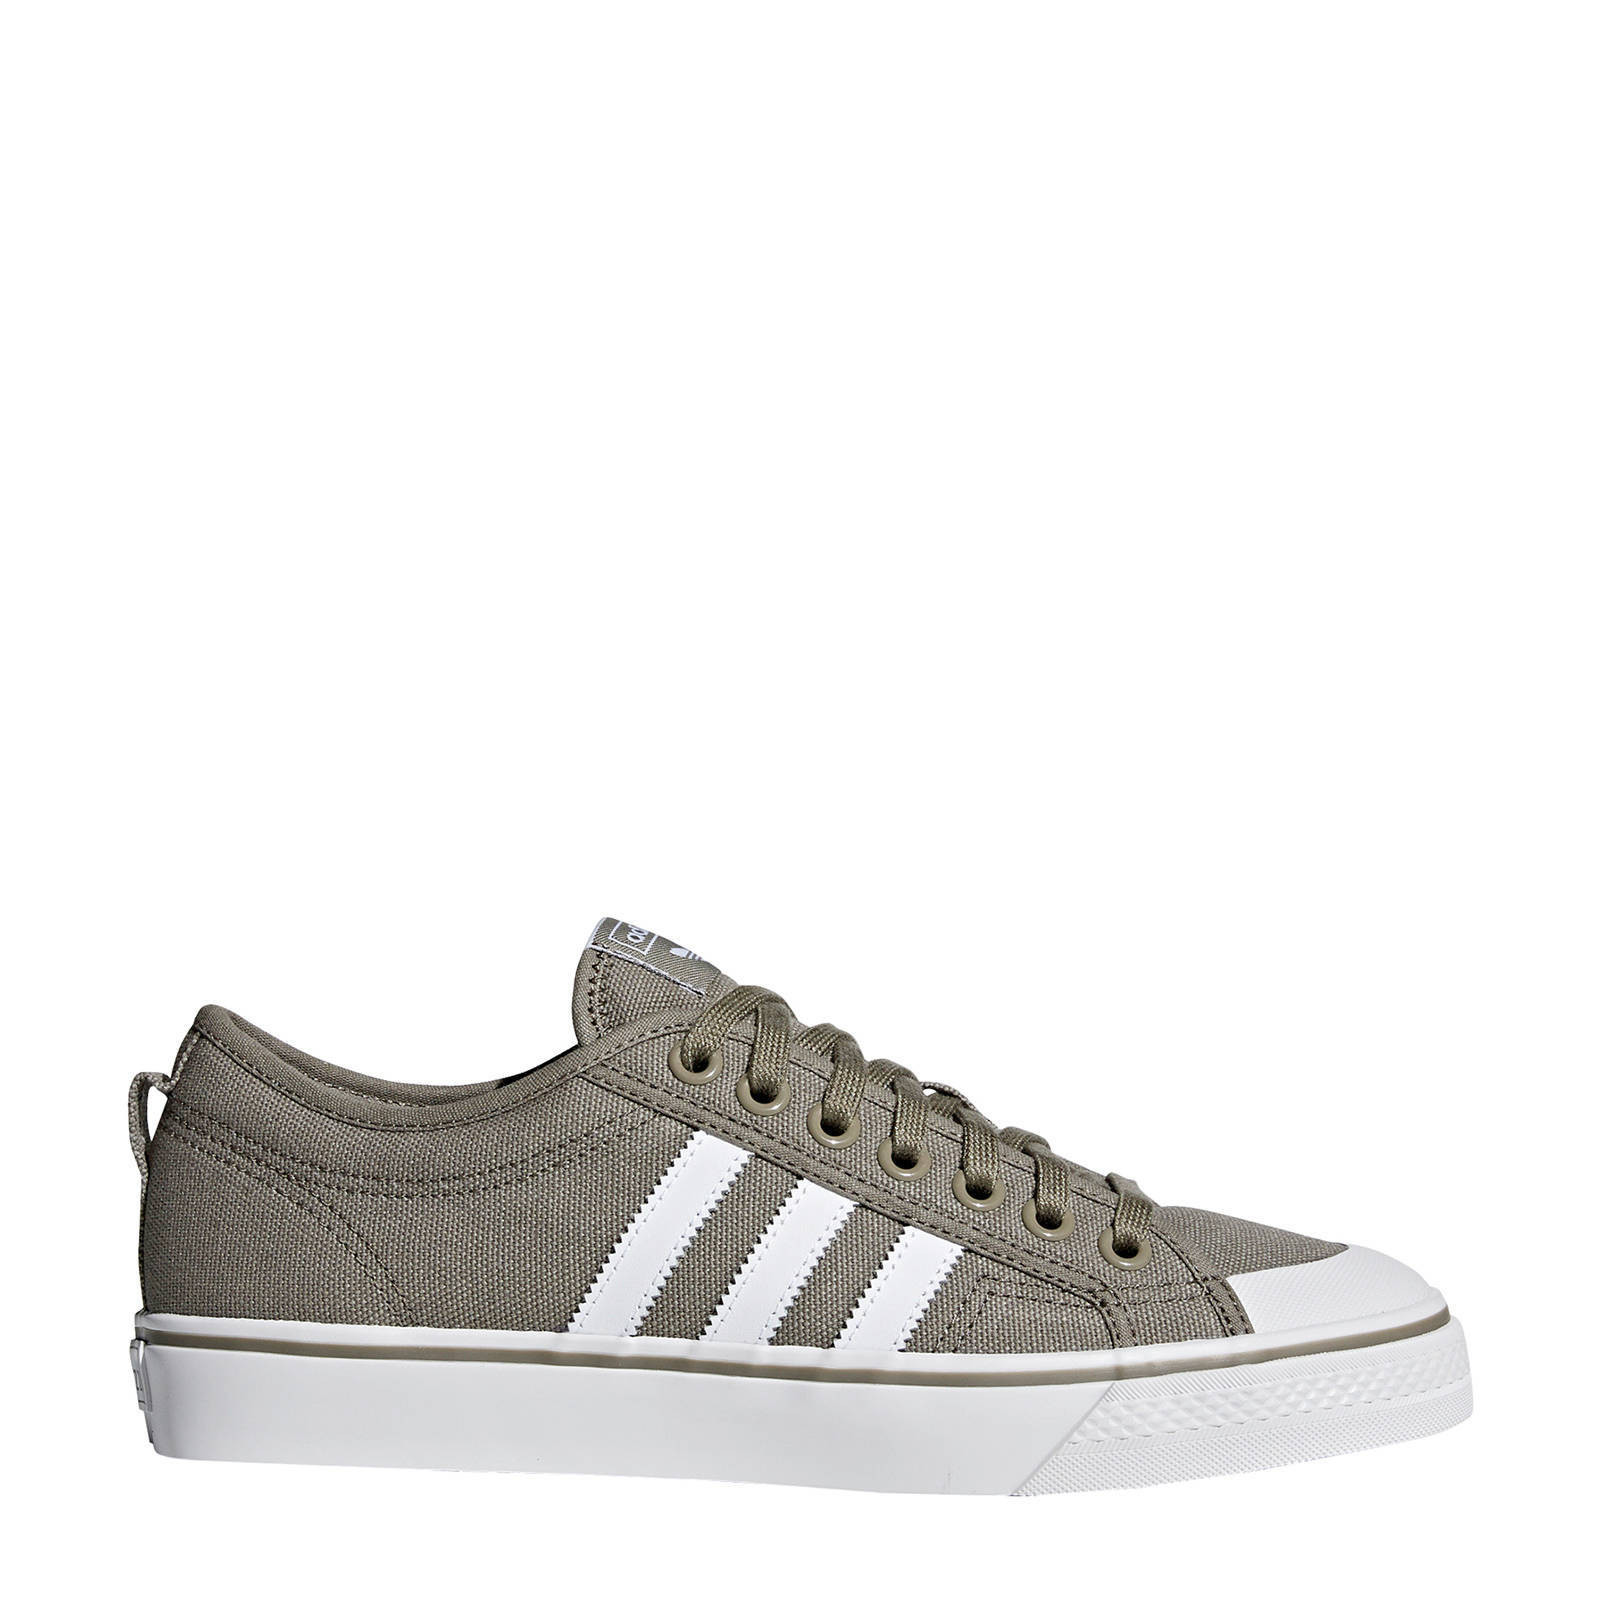 adidas superstar kindermaat 38 wit